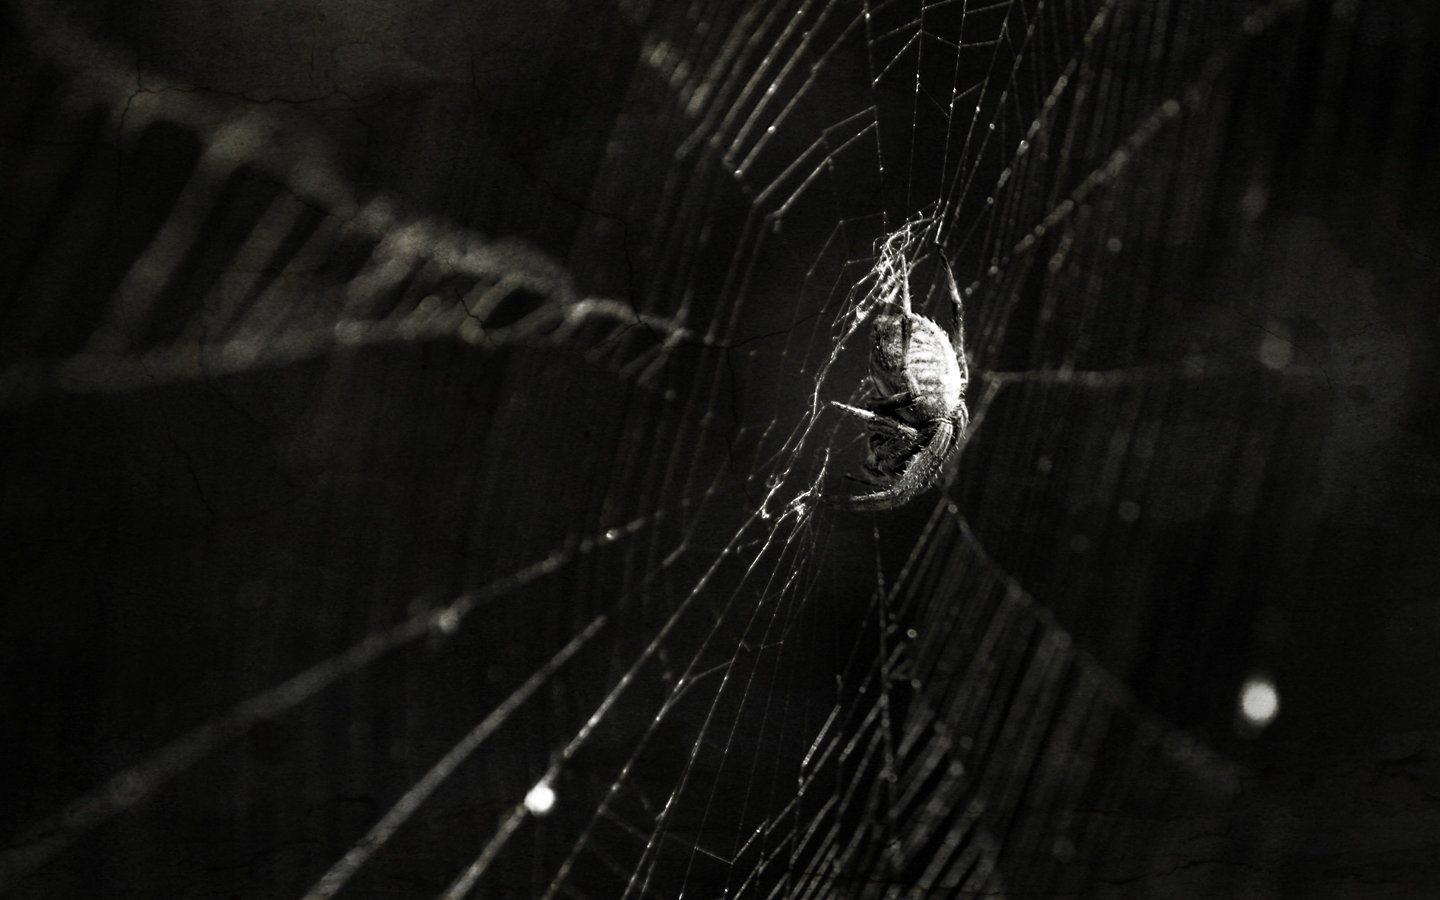 Awesome Spider free wallpaper ID:22062 for hd 1440x900 desktop